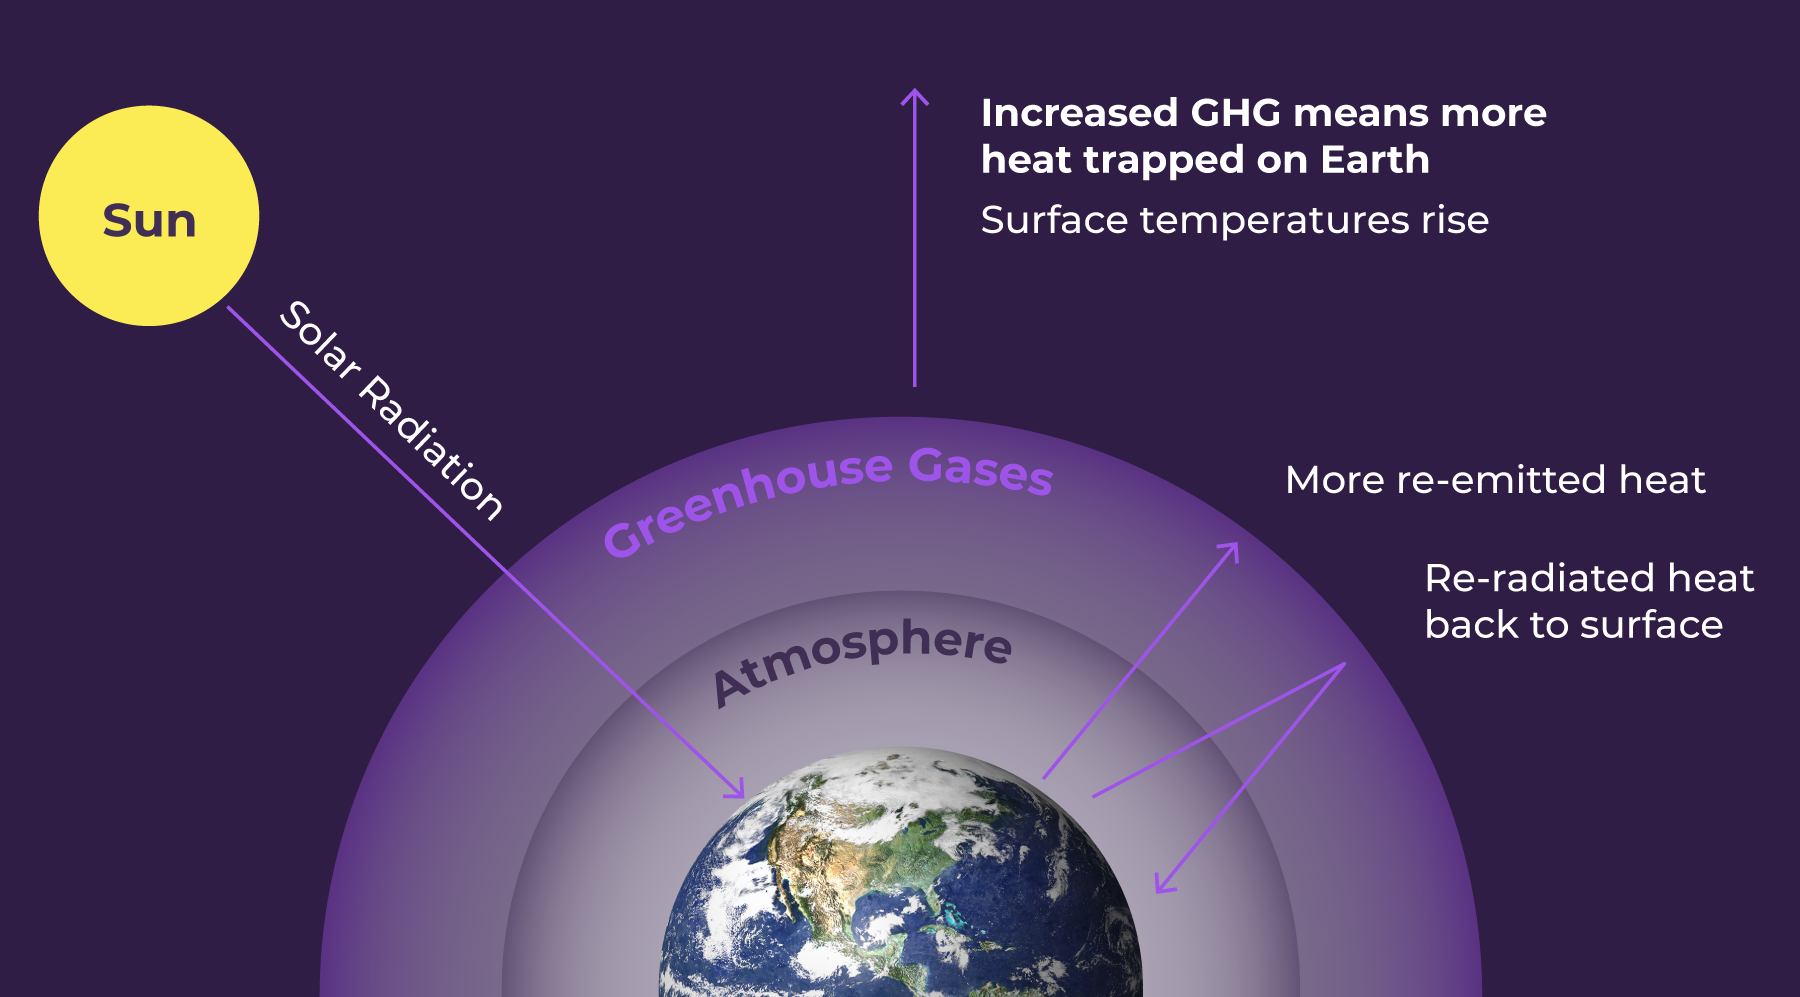 Increased greenhouse gas emissions mean more heat trapped on Earth